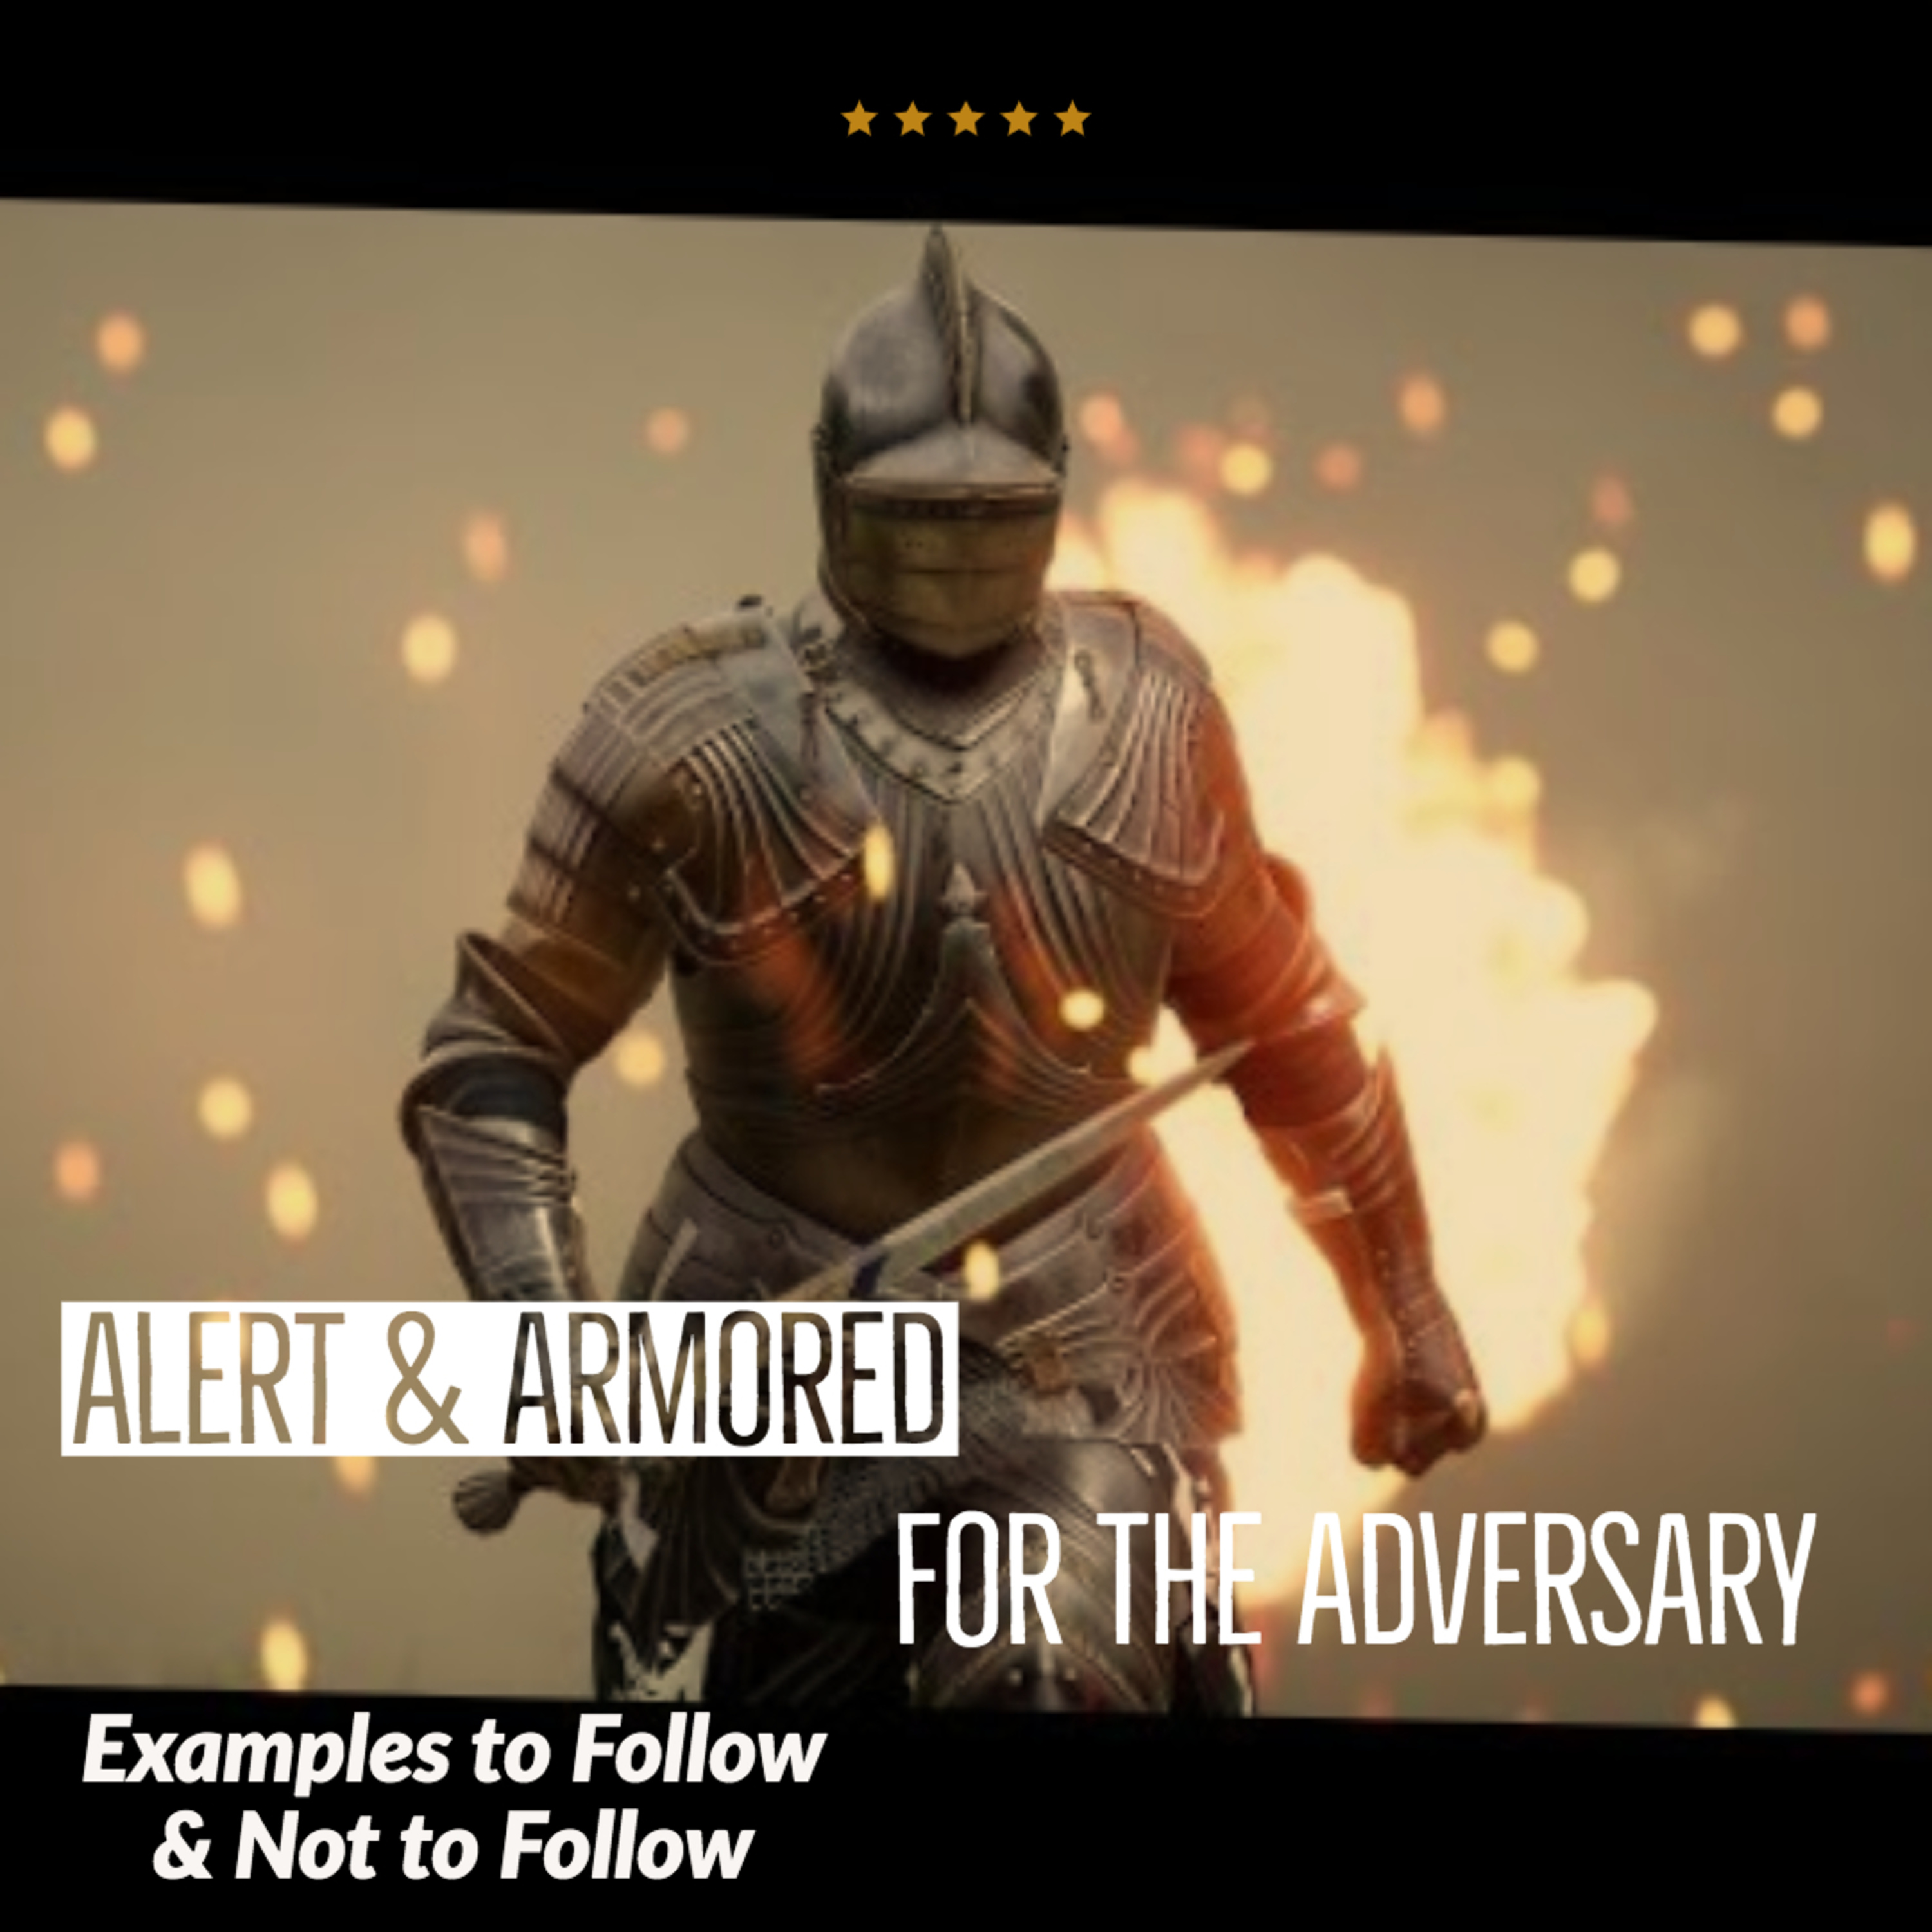 Alert and Armored for the adversary